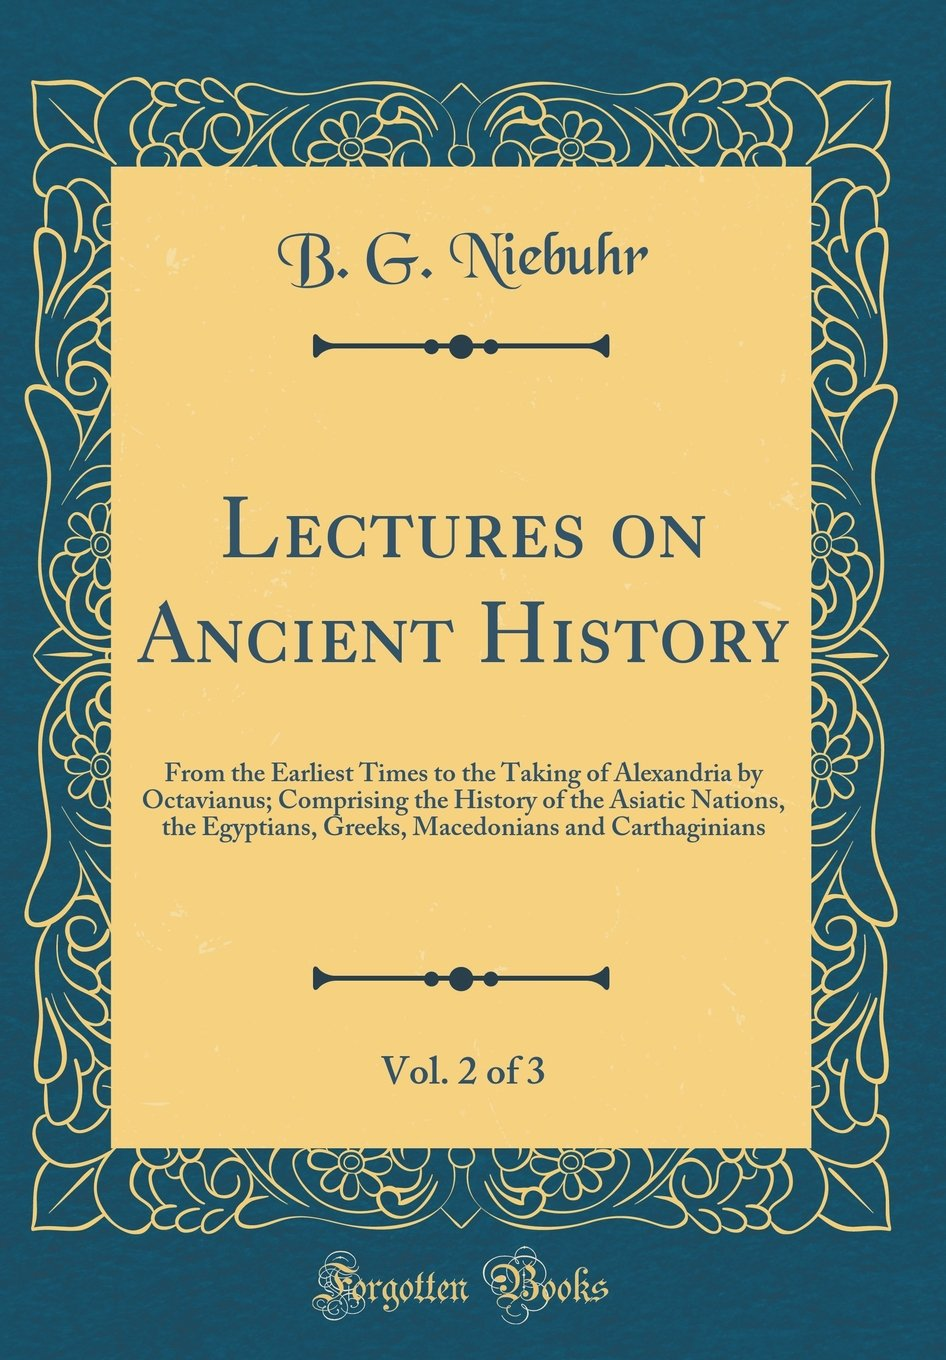 Lectures on Ancient History, Vol. 2 of 3: From the Earliest Times to the Taking of Alexandria by Octavianus; Comprising the History of the Asiatic and Carthaginians (Classic Reprint)